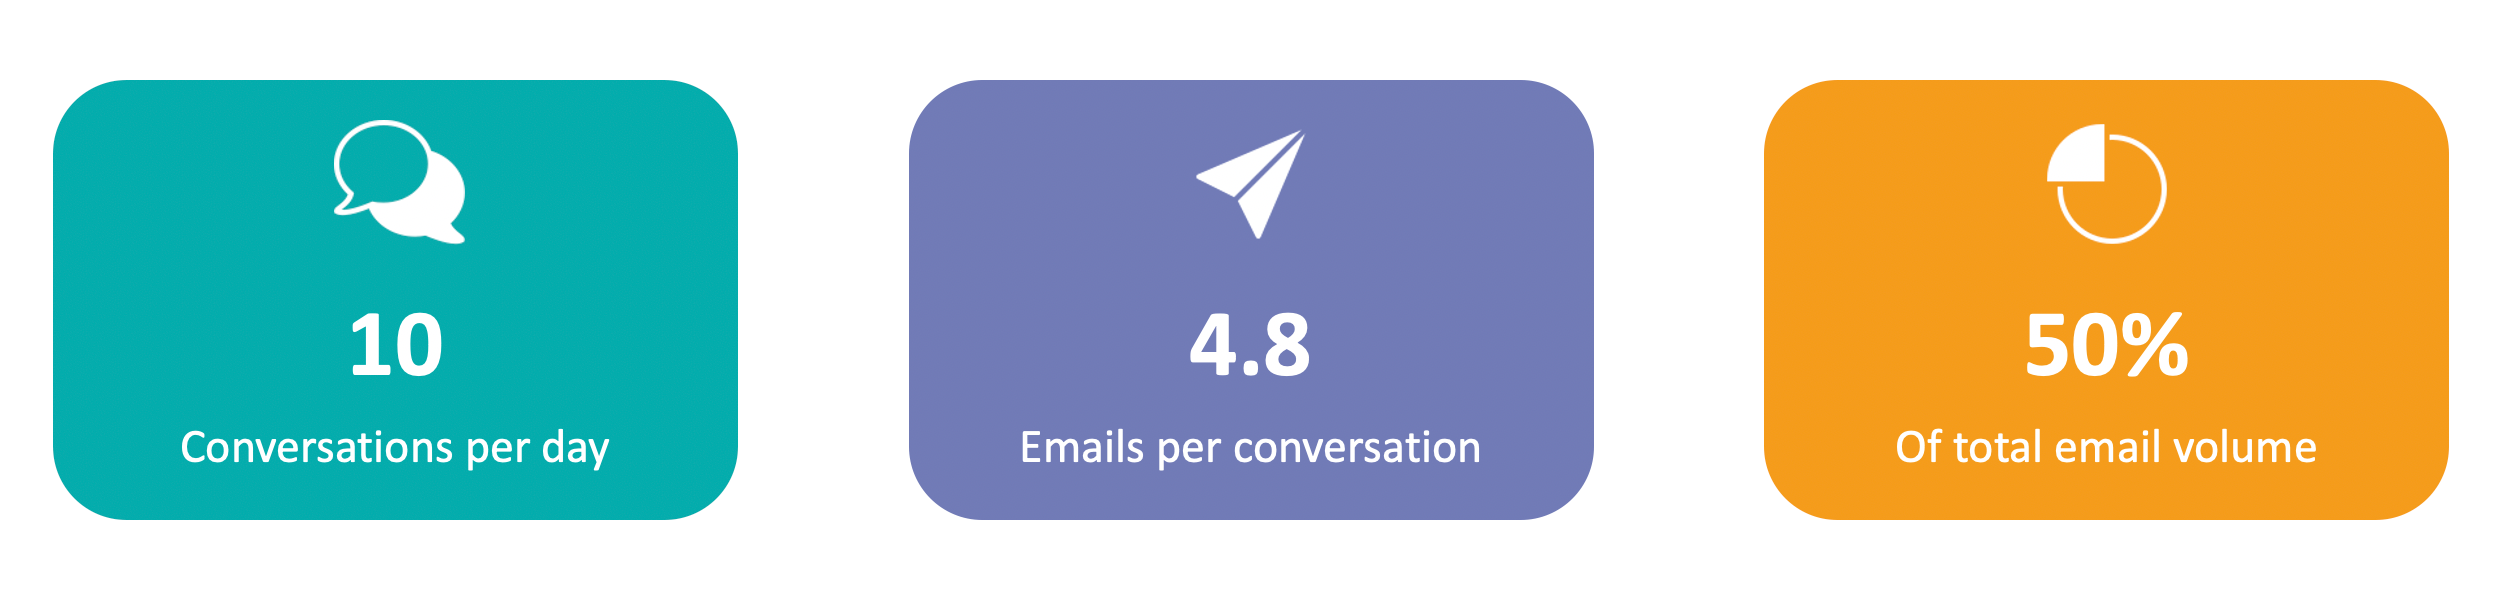 Email conversations infographic